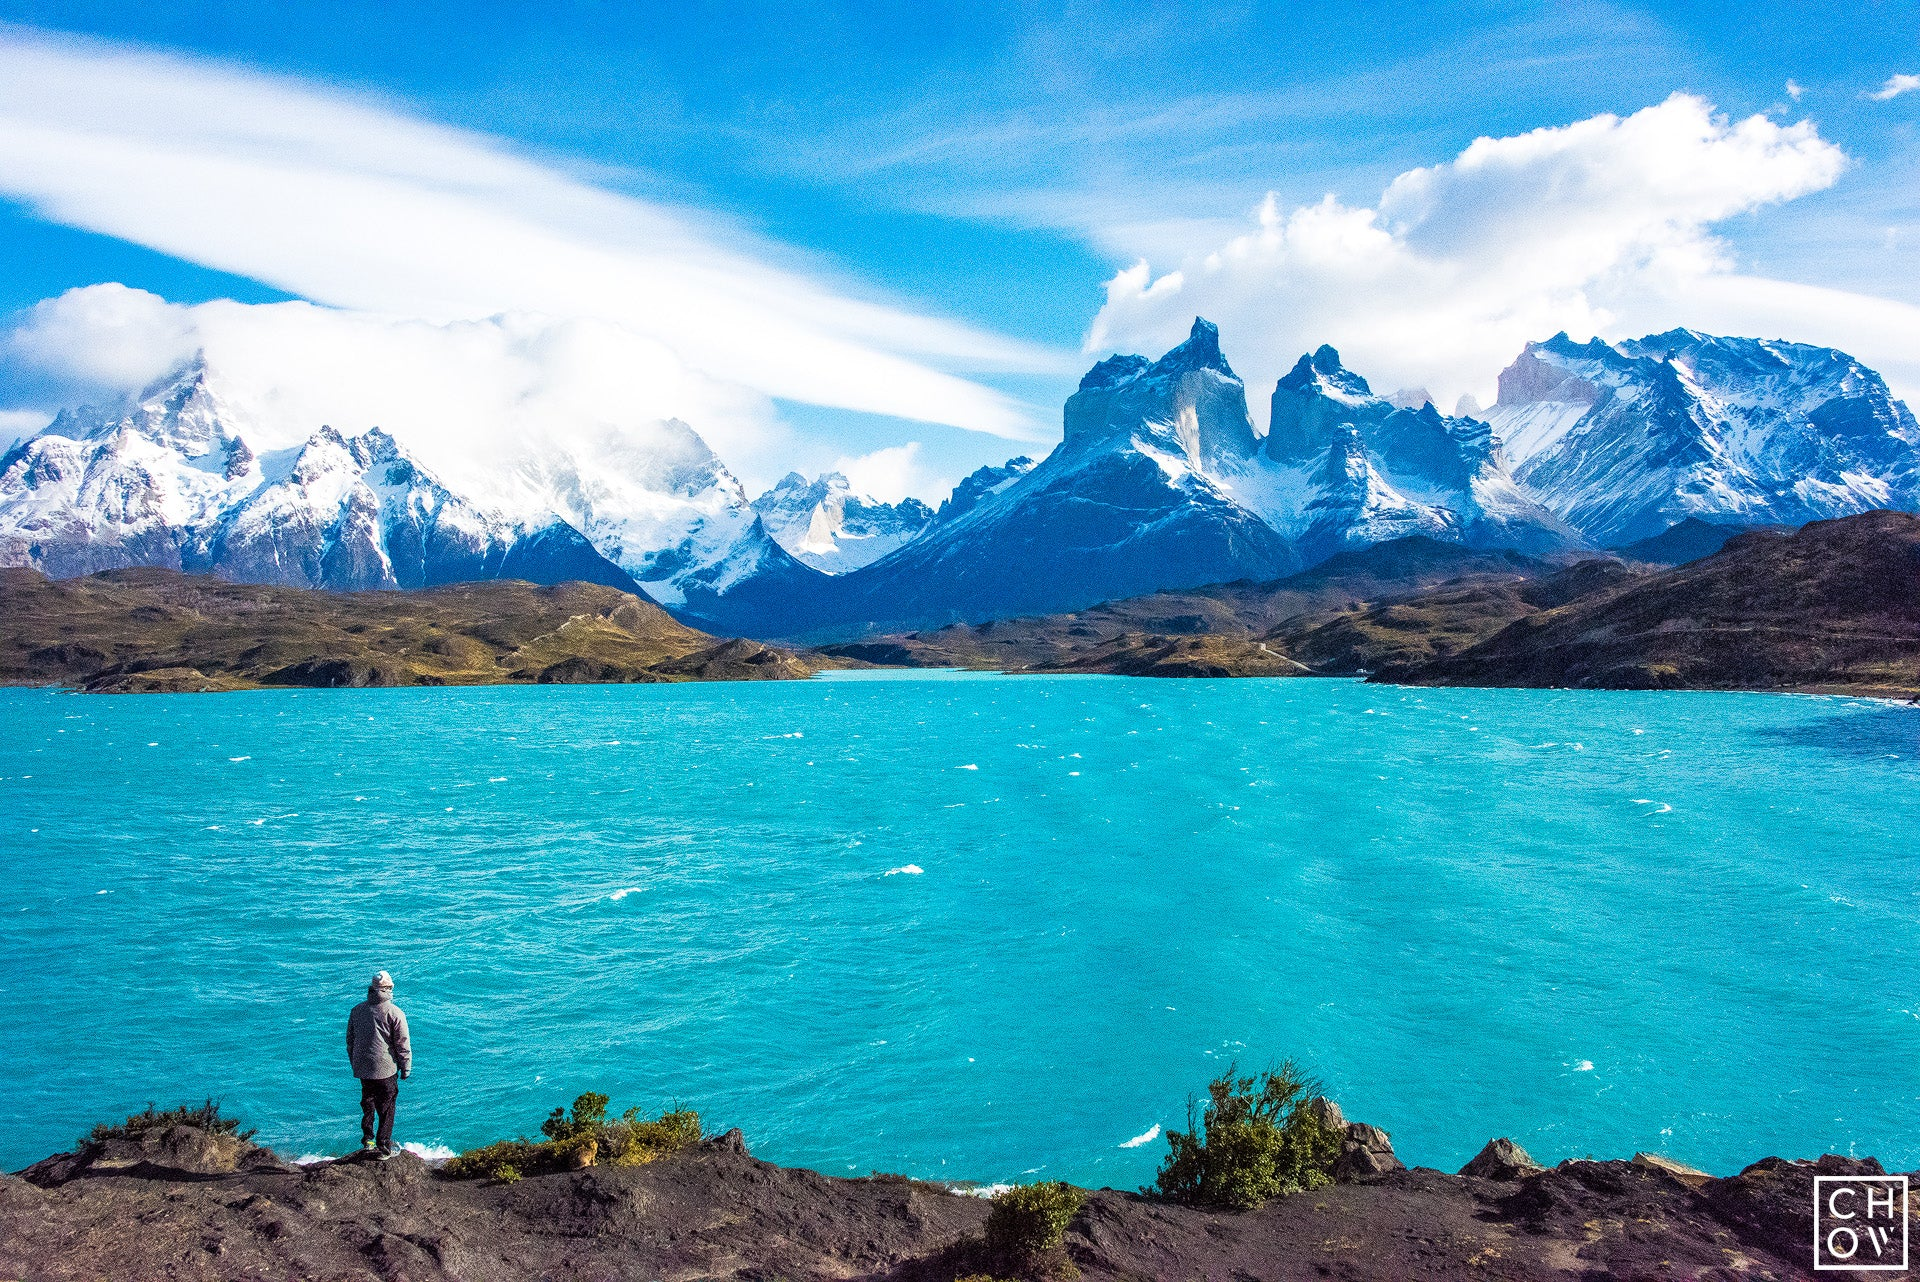 Standing on the edge of Lake Pehoe, Torres del Paine